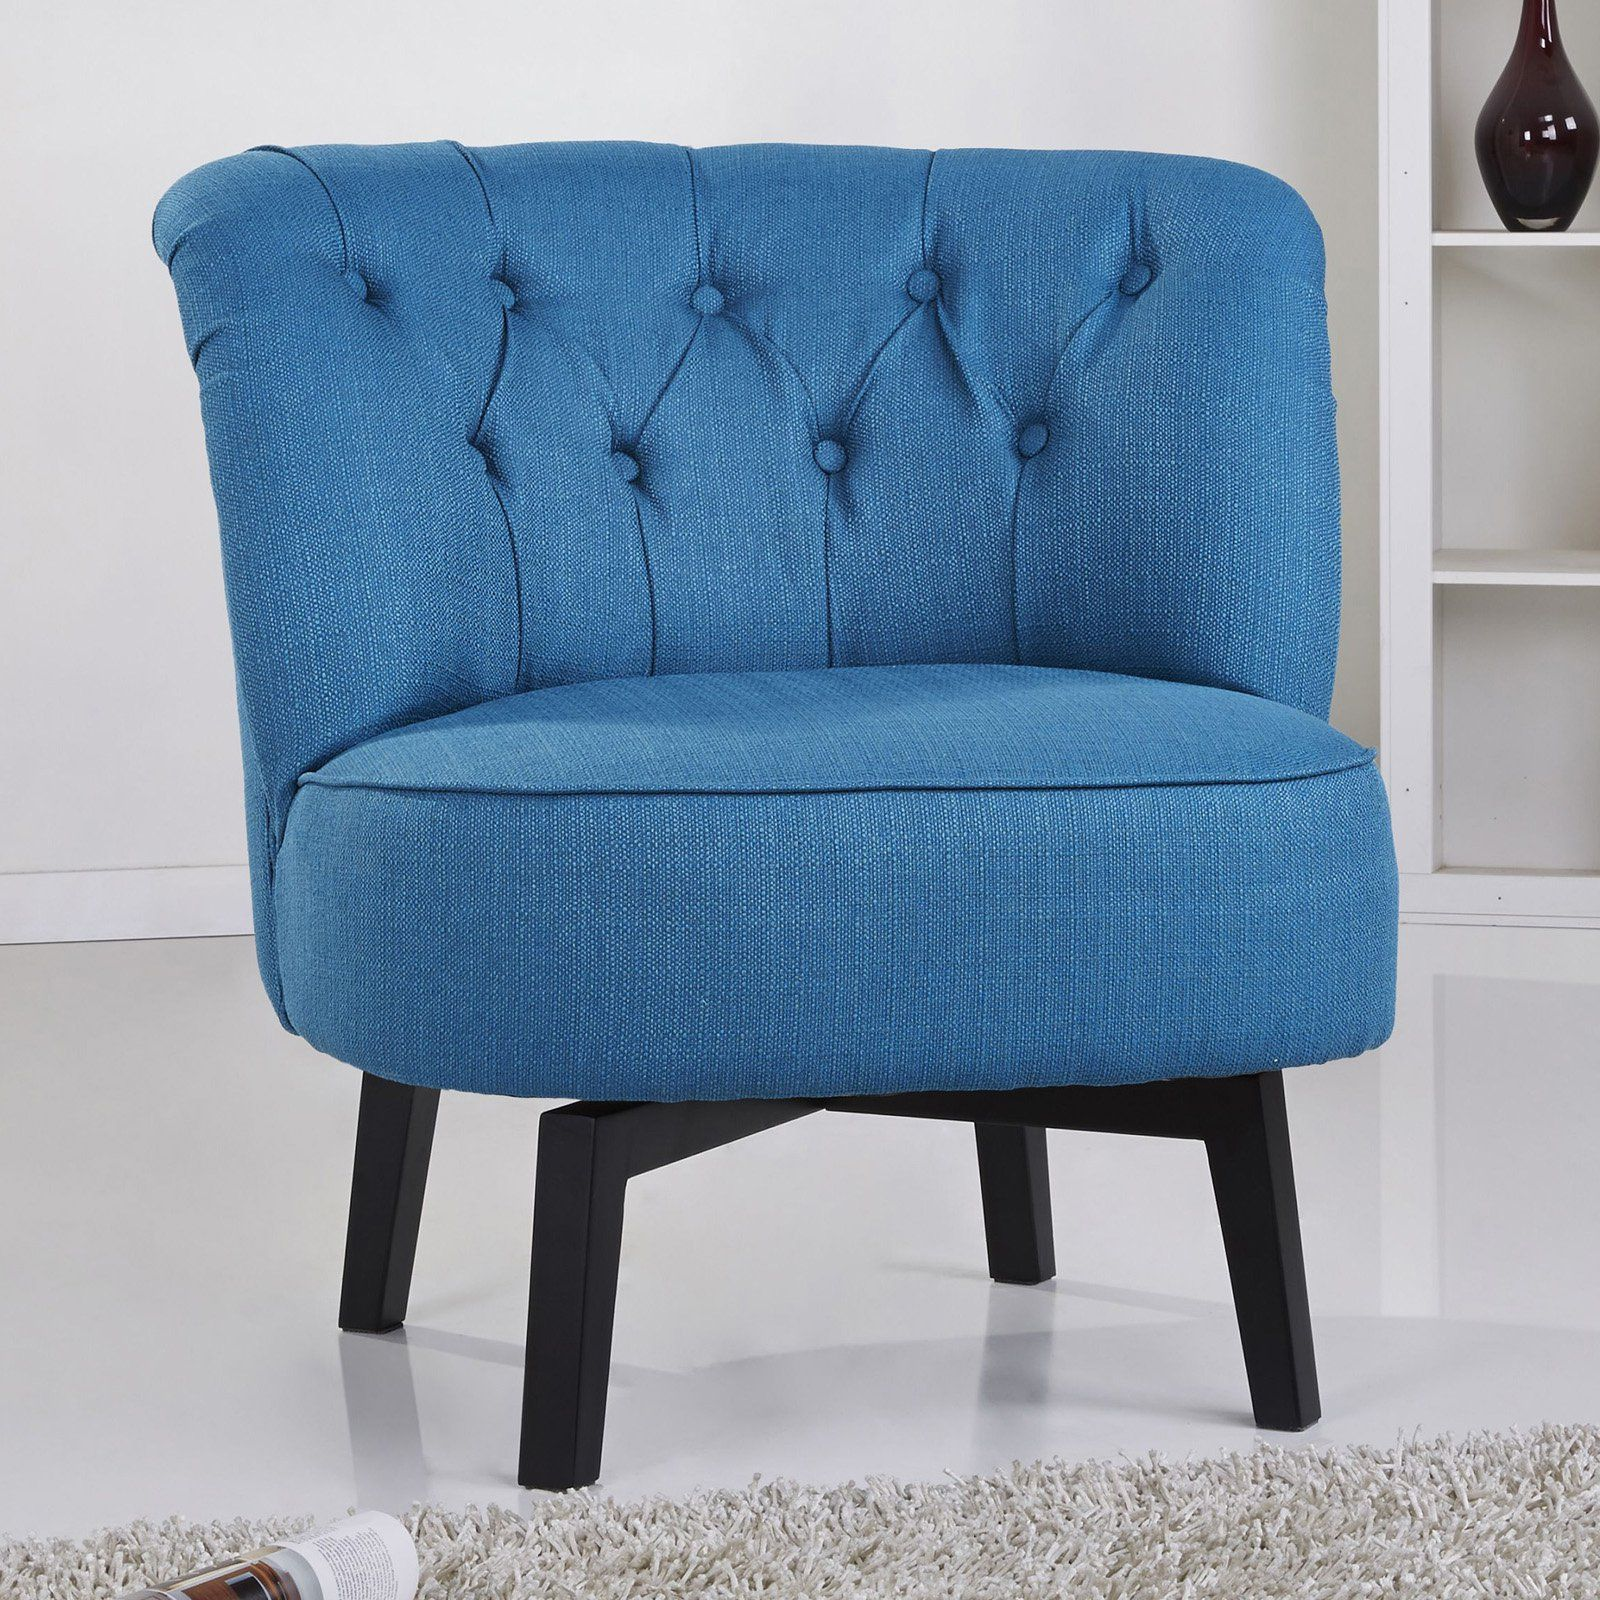 gold sparrow raleigh swivel chair  from hayneedlecom. gold sparrow raleigh swivel chair  from hayneedlecom  bedroom